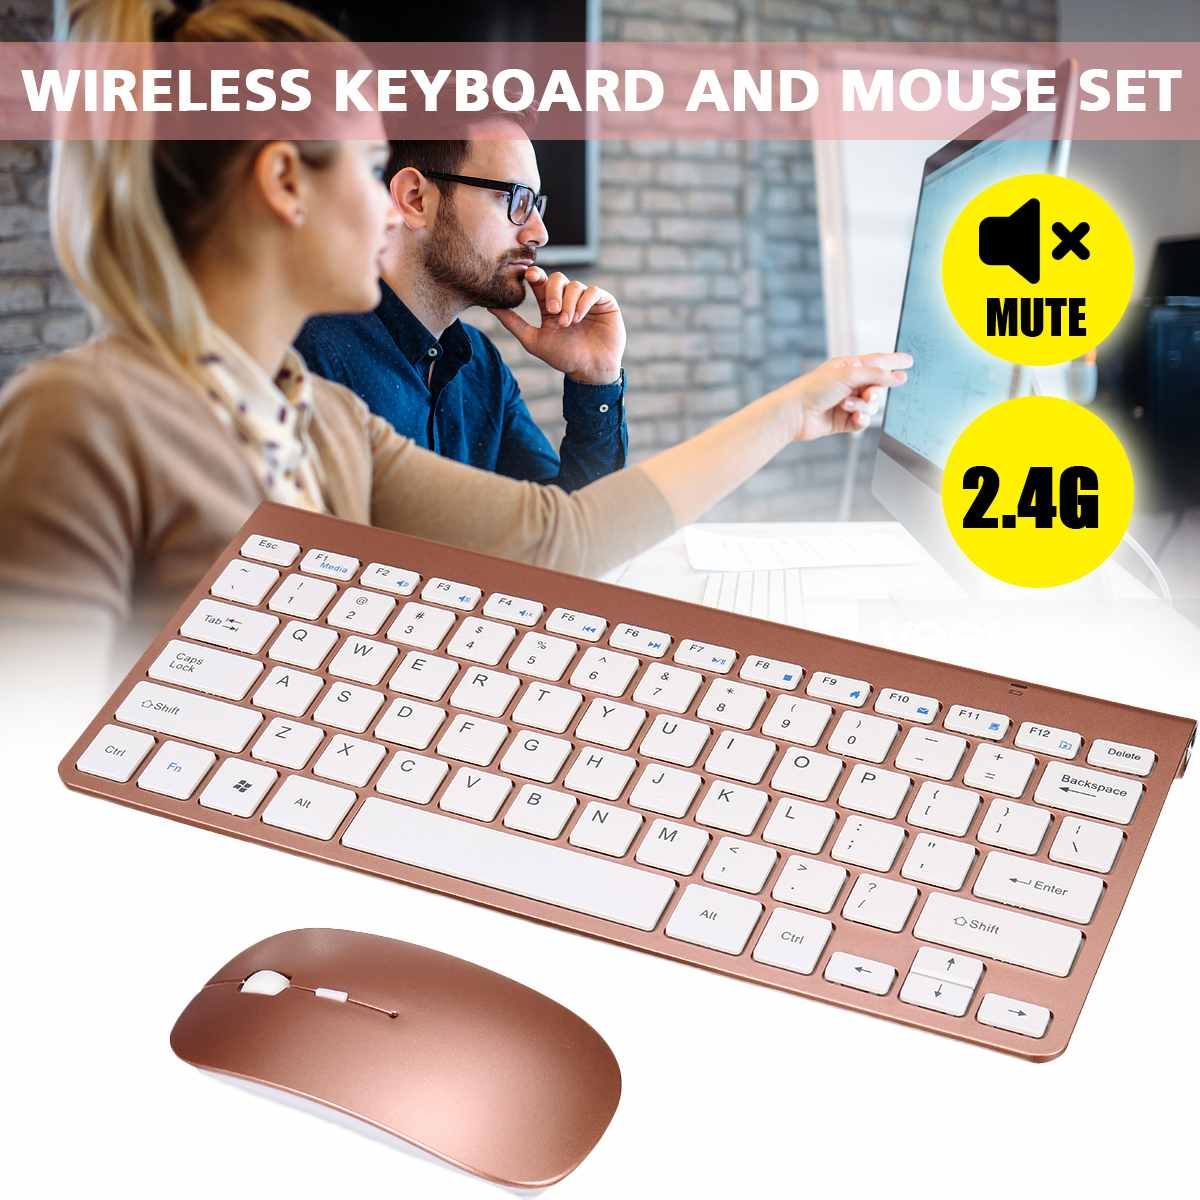 2.4G Wireless Slim Silent Keyboard and Mouse Mini Multimedia Full-size Keyboard Mouse Combo Set For Notebook Laptop Desktop PC